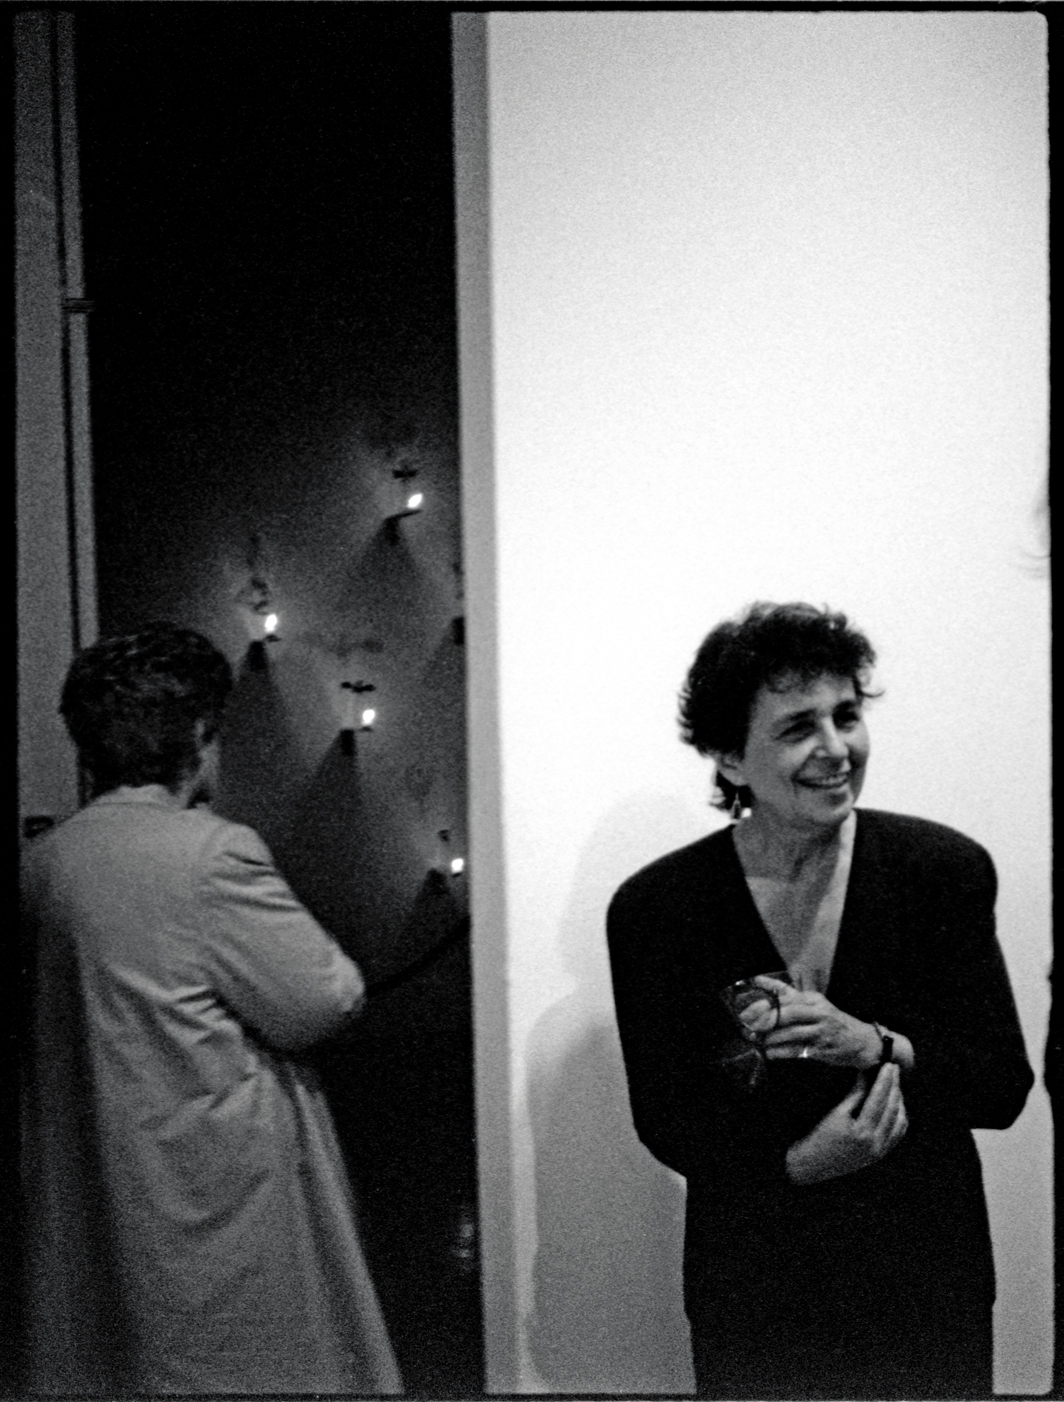 "Luciano Perna, Ileana Sonnabend looking at a Christian Boltanski installation and Marian Goodman, Marian Goodman Gallery, New York, 1987, ink-jet print, 22 × 17""."